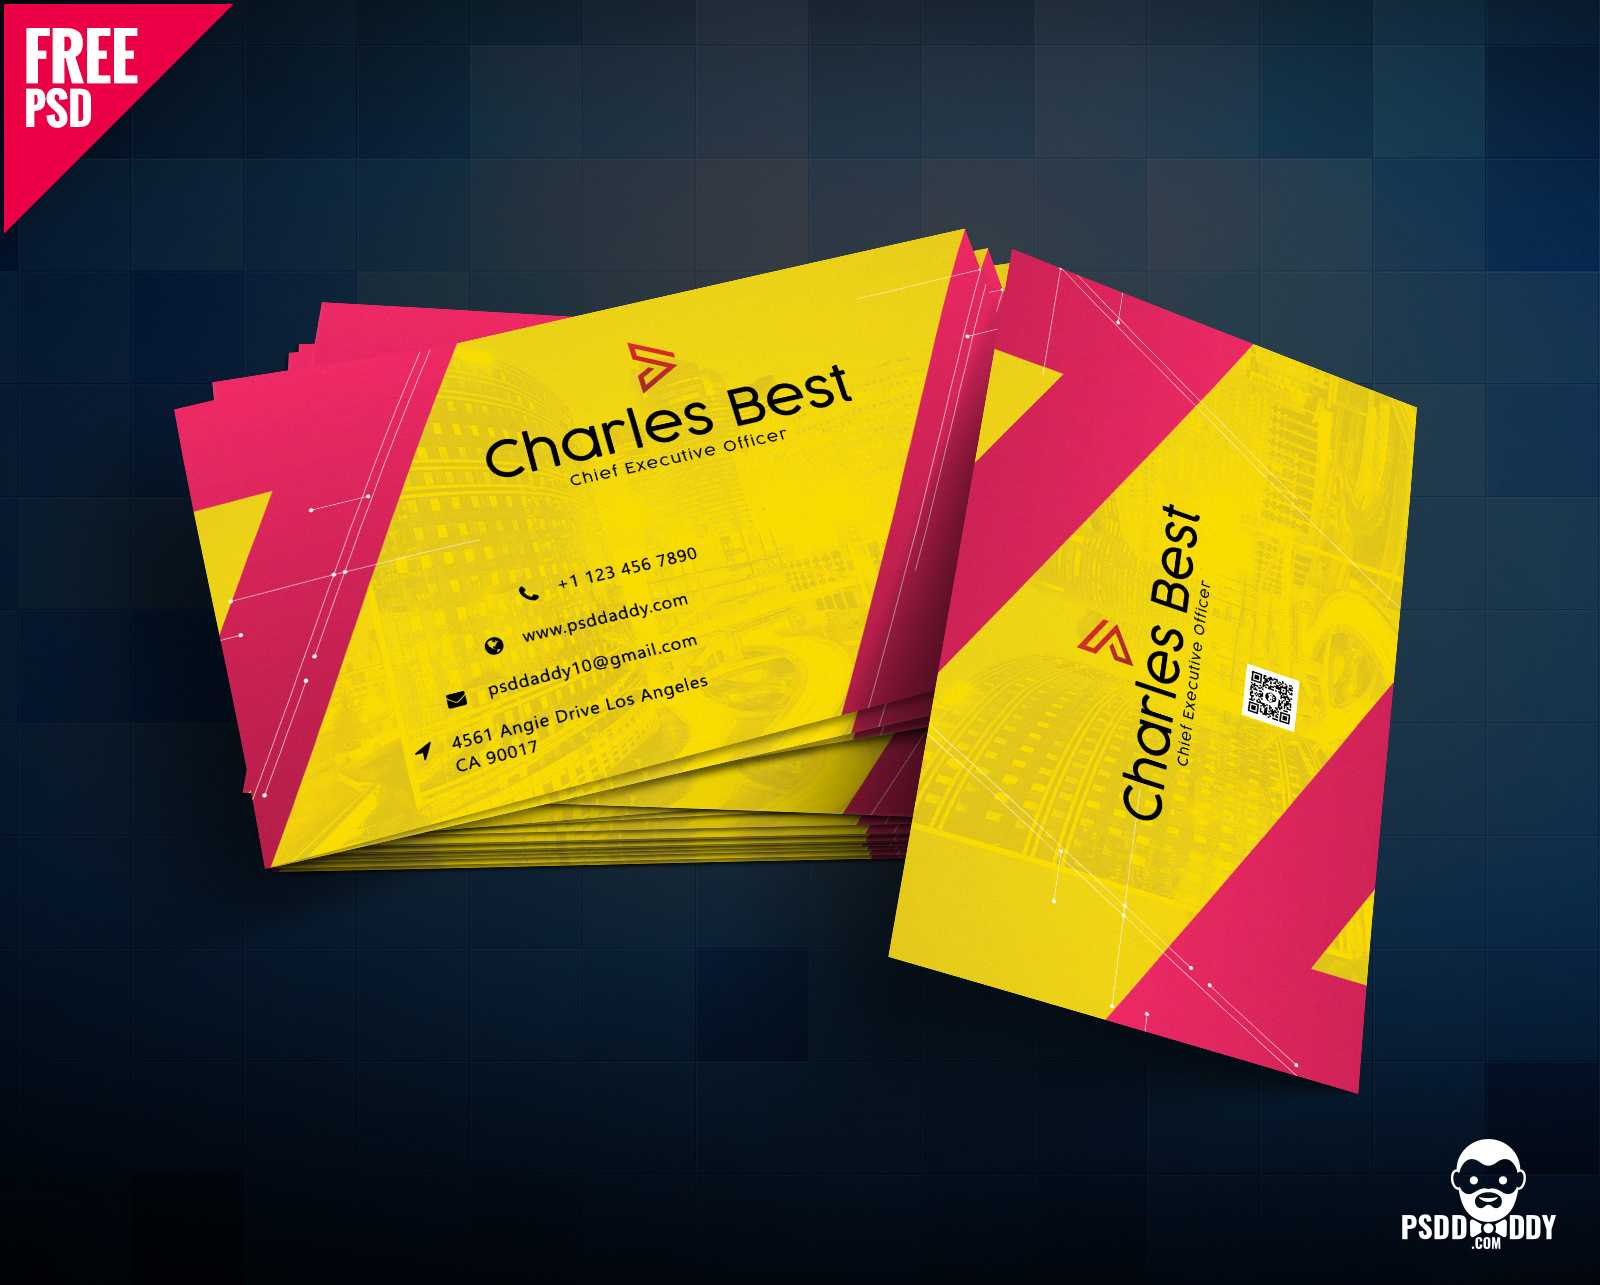 Download] Creative Business Card Free Psd | Psddaddy Within Business Card Maker Template